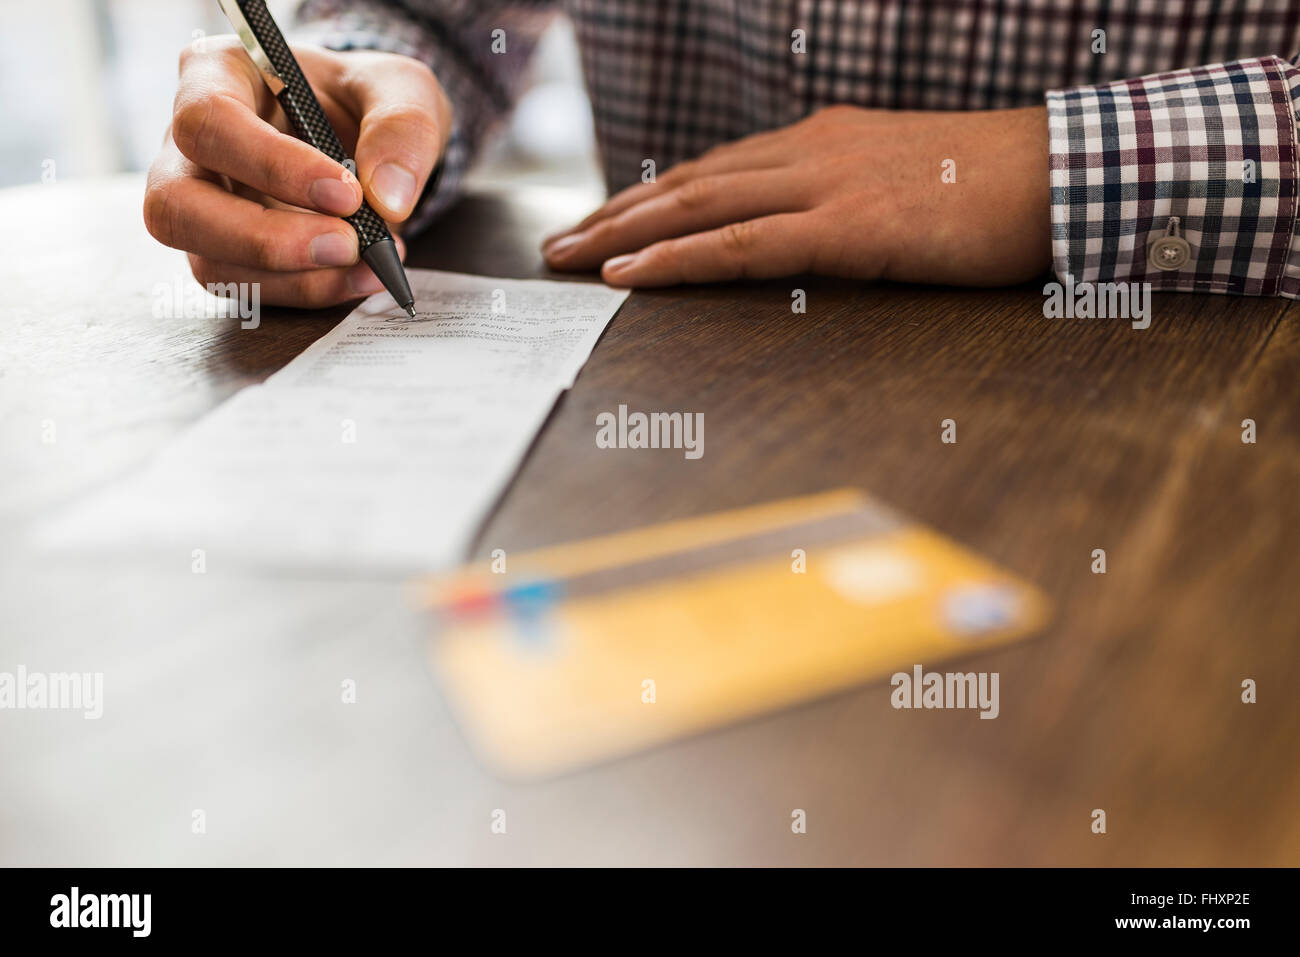 Close-up of man signing bill on table - Stock Image